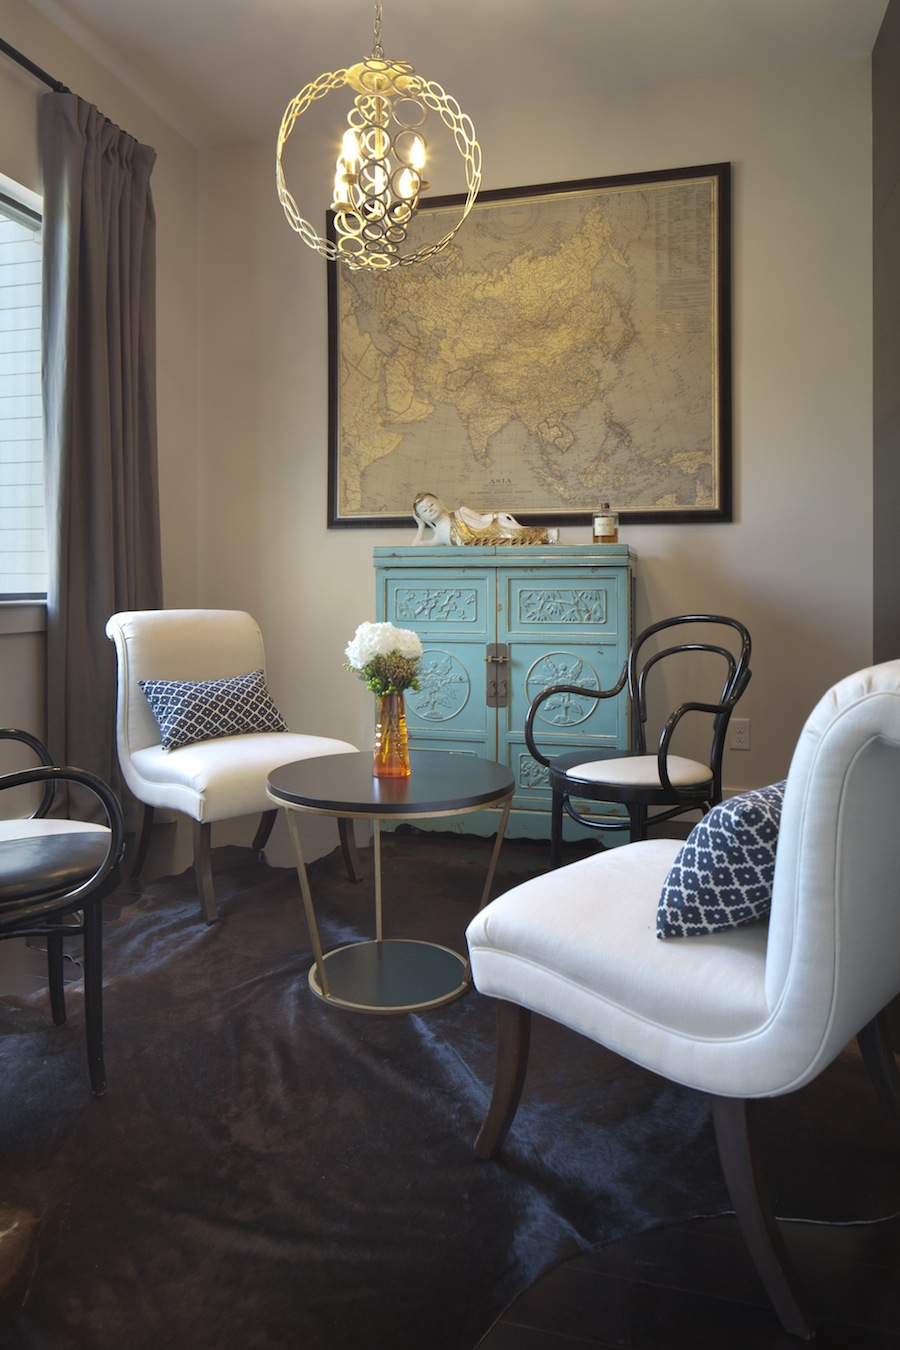 A sitting room area design by Jill May.